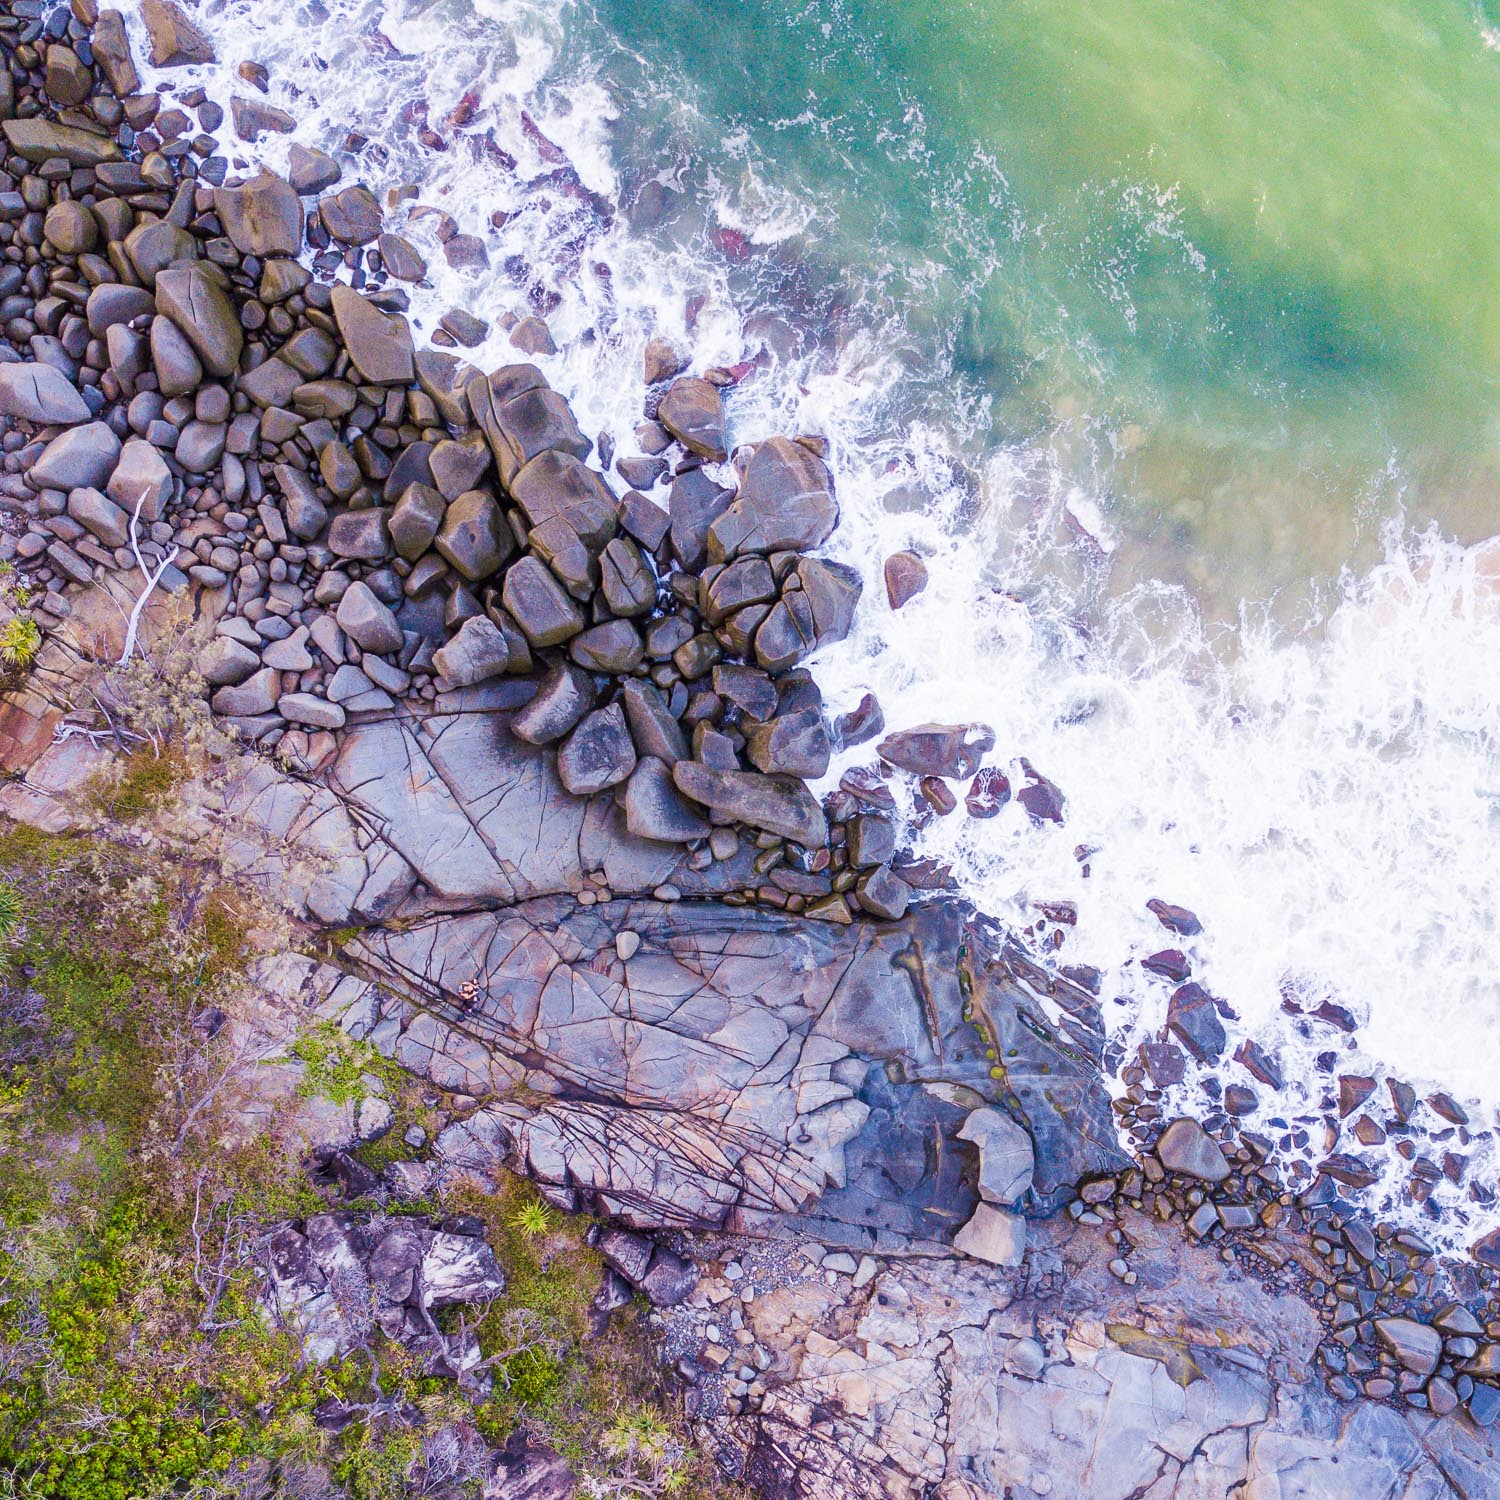 How to Work the Scene to Get More Great Photos - overhead view of a rocky beach